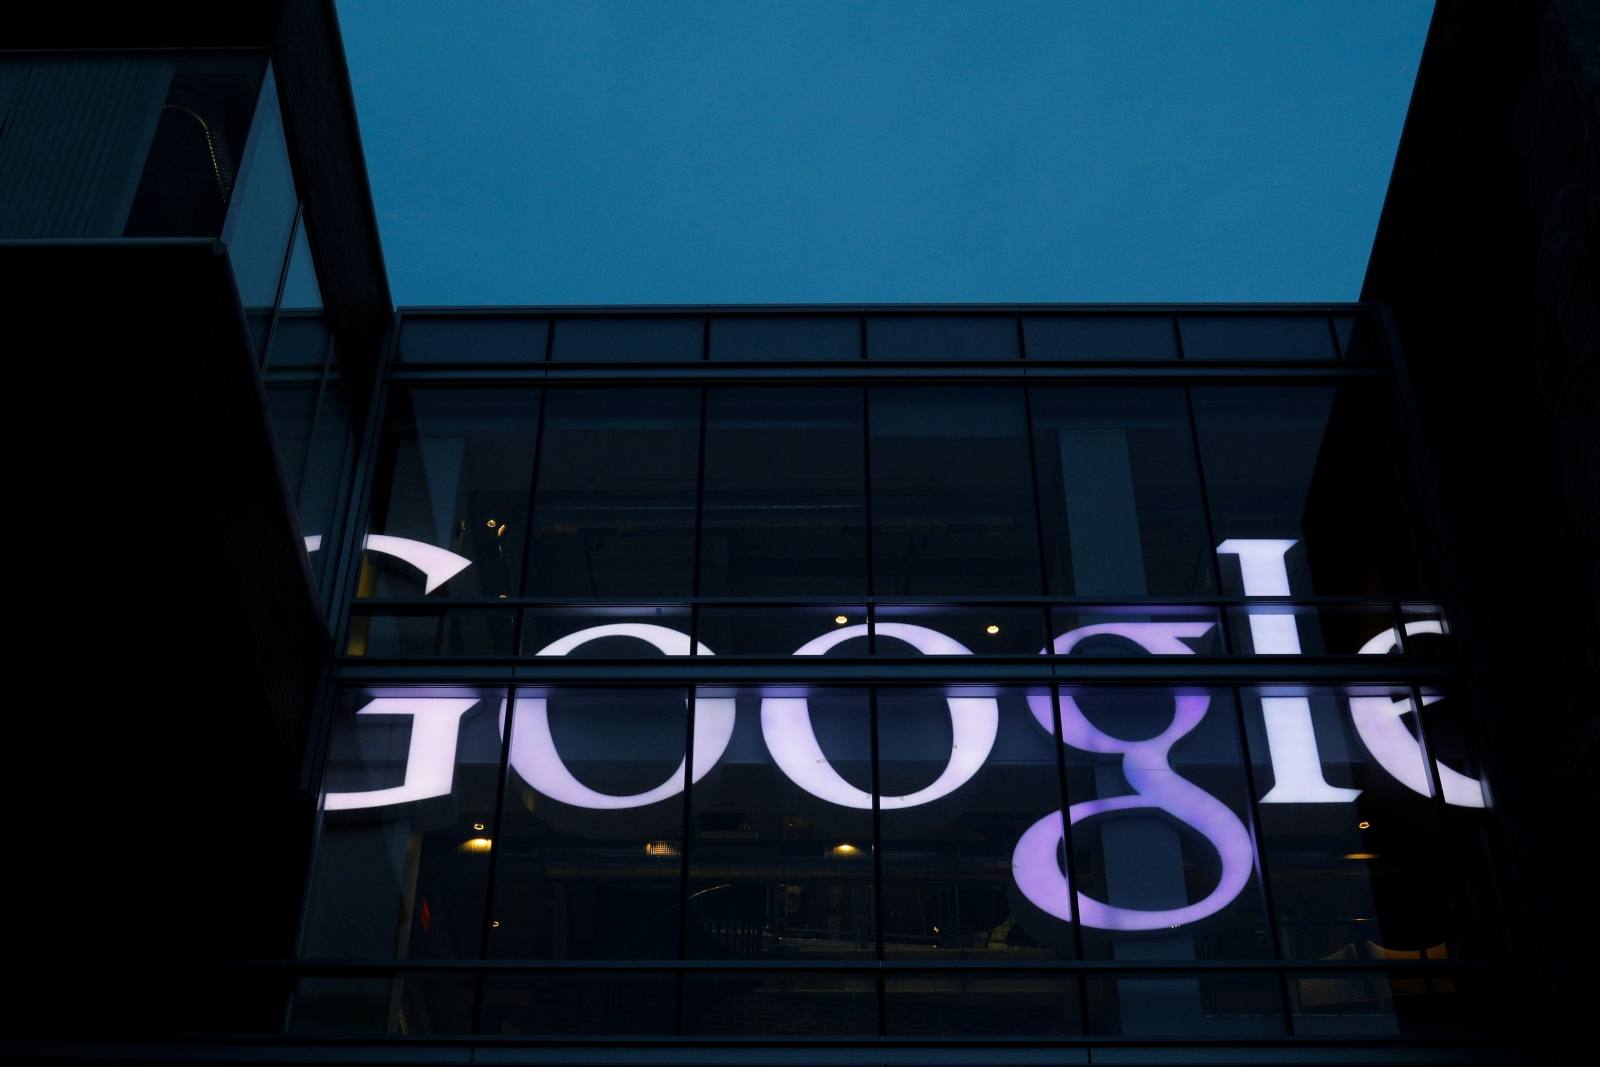 Google spent millions influencing academic research, according to watchdog